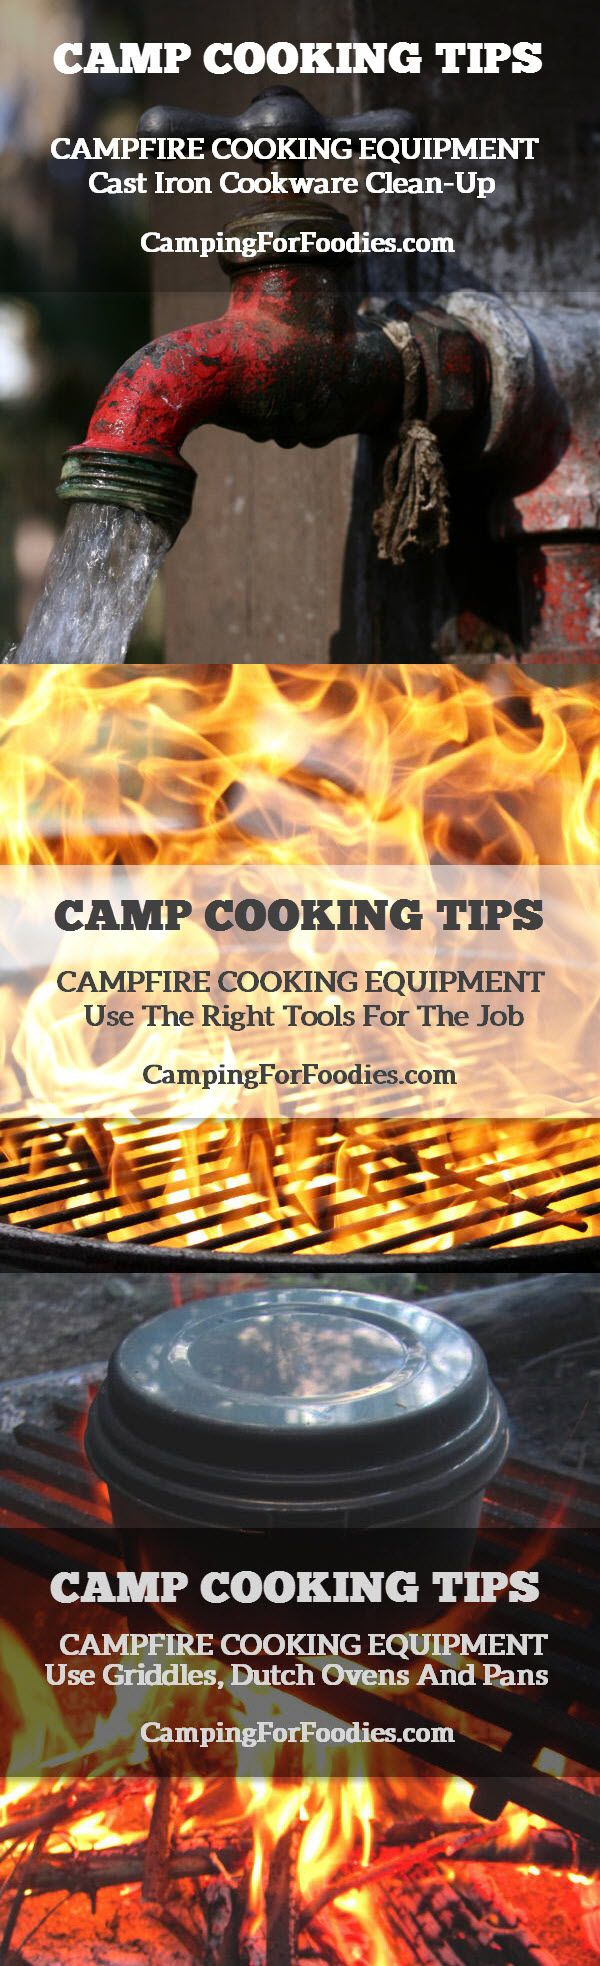 Camp Cooking Tips For Campfire Cooking Equipment - Use The Right Tools For The Job - Cast Iron Cookware Clean-Up For Cast Iron Griddles, Dutch Ovens And Pans - Camping For Foodies .com. Find tons of great RV and camping tips and recipes http://www.campingforfoodies.com/campfire-cooking-equipment-you-cant-live-without/